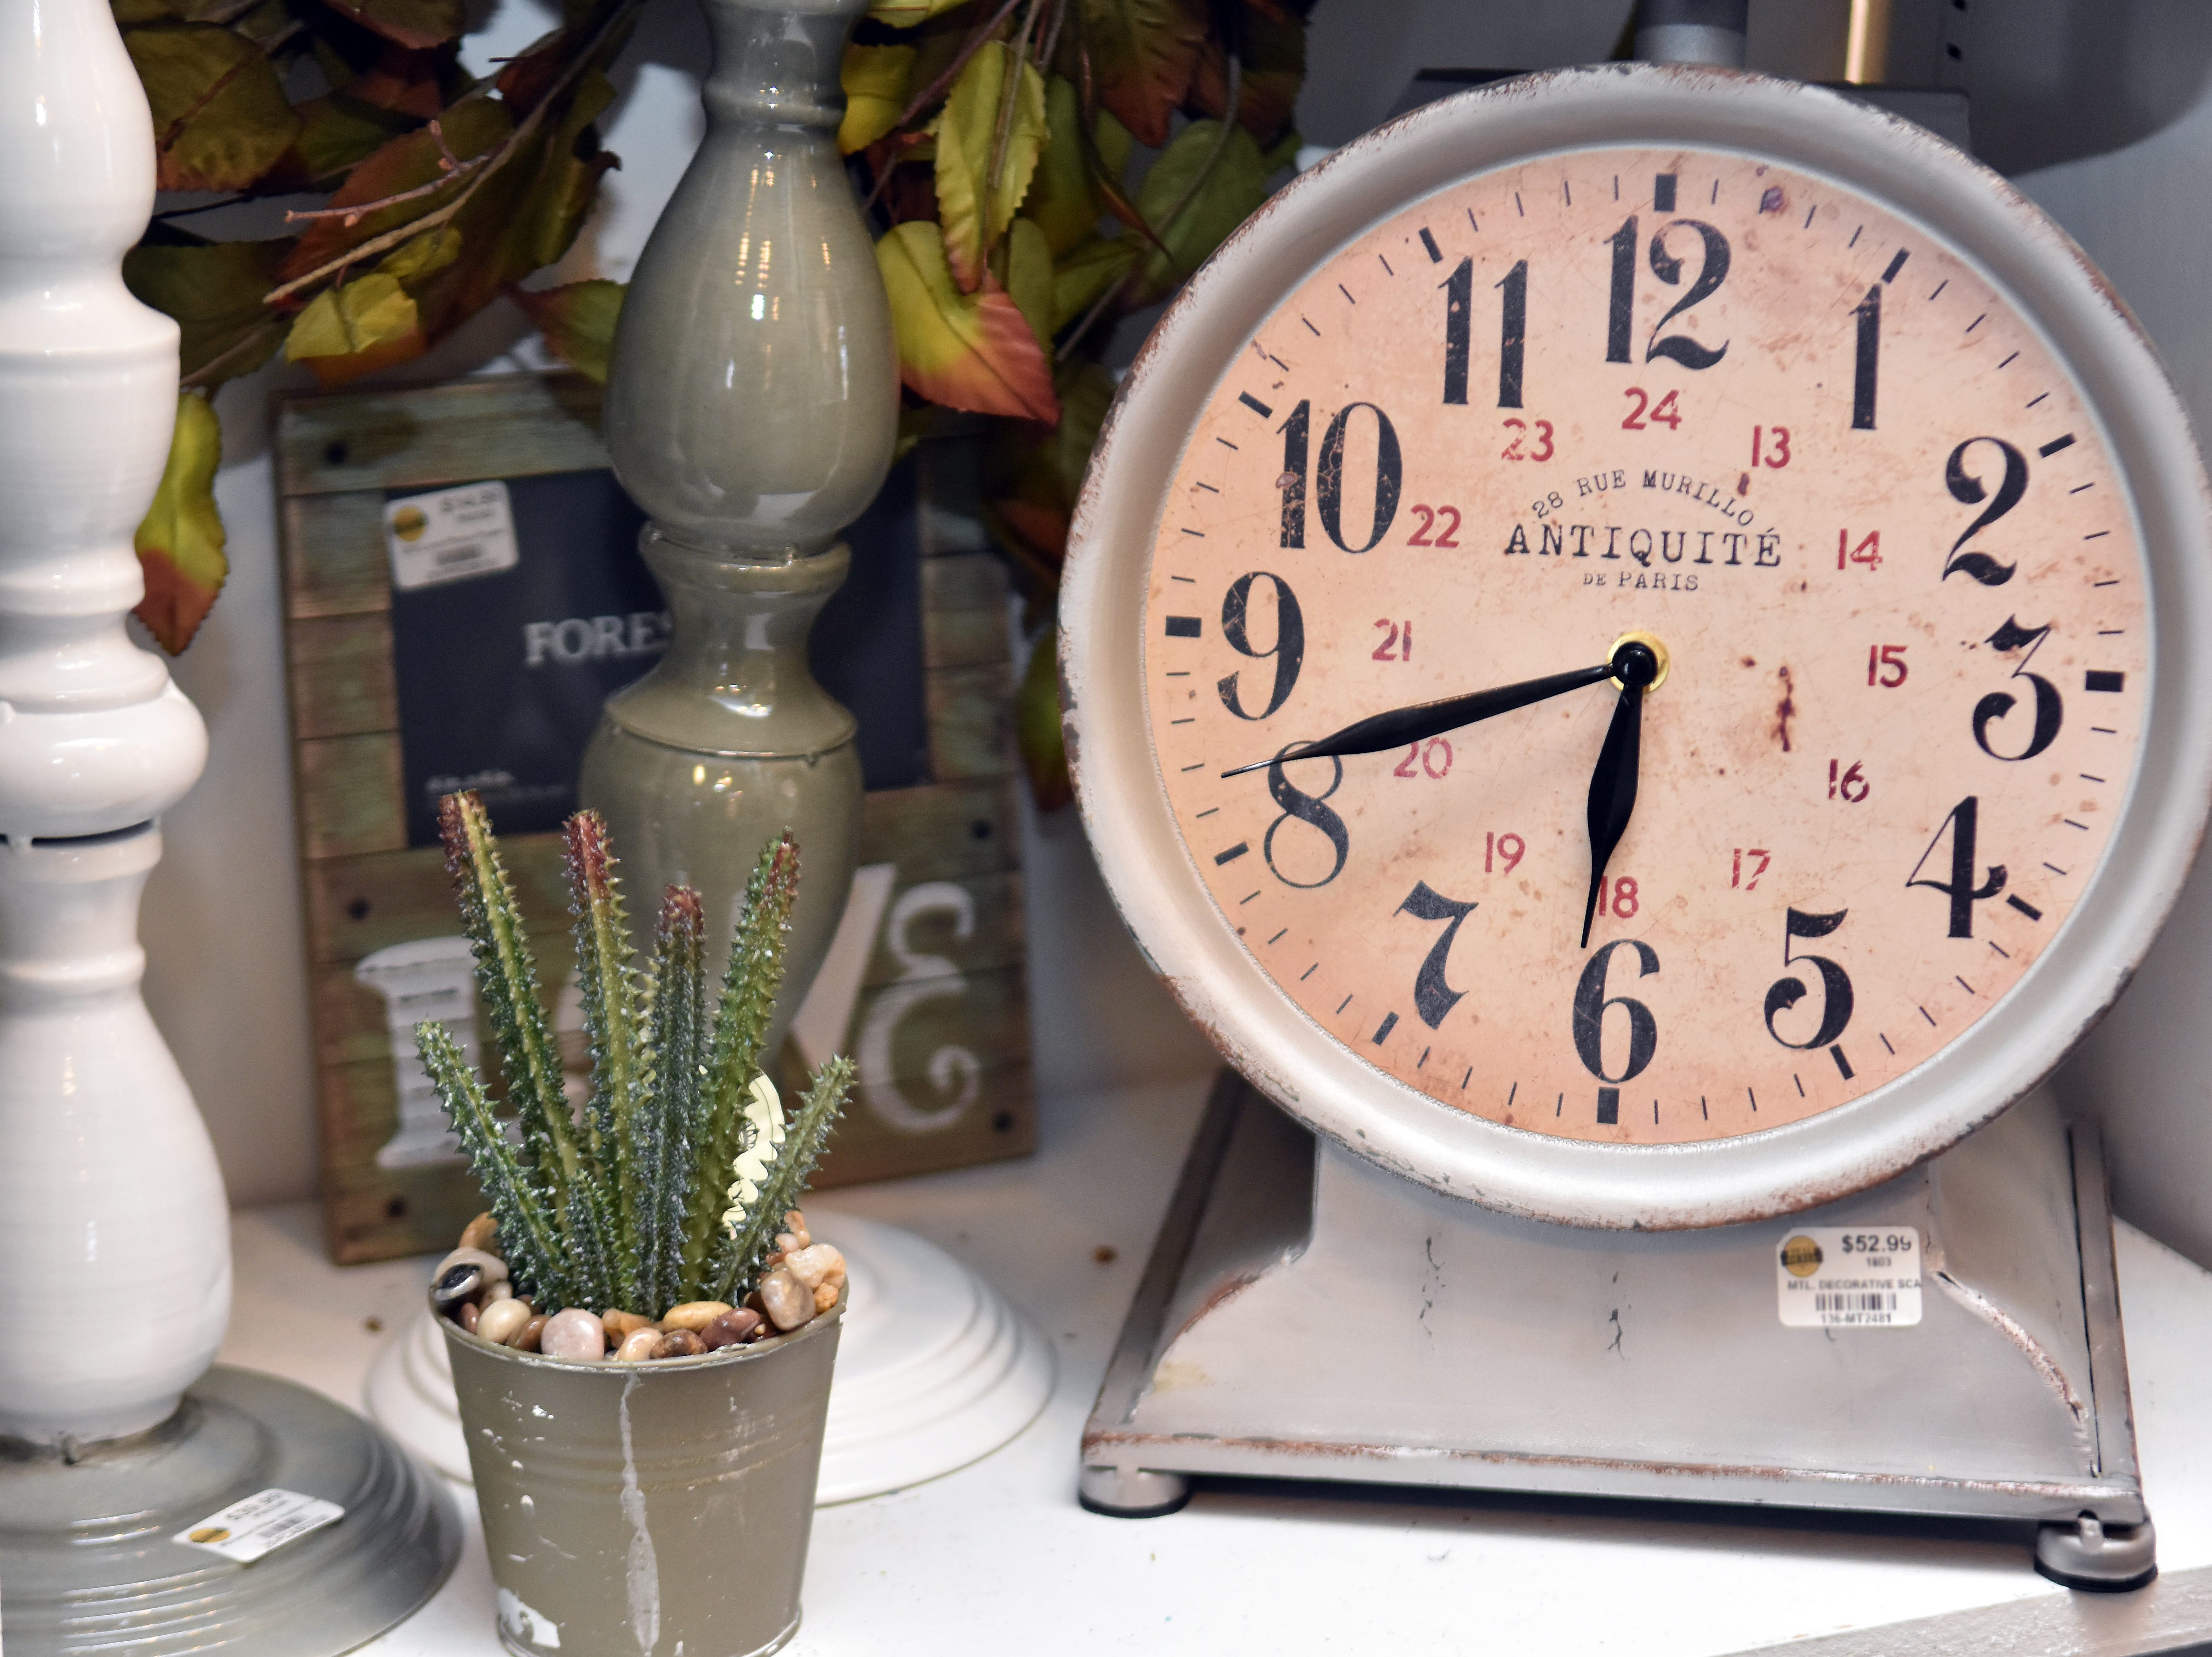 This scale with clock face creates a focal point in a home.